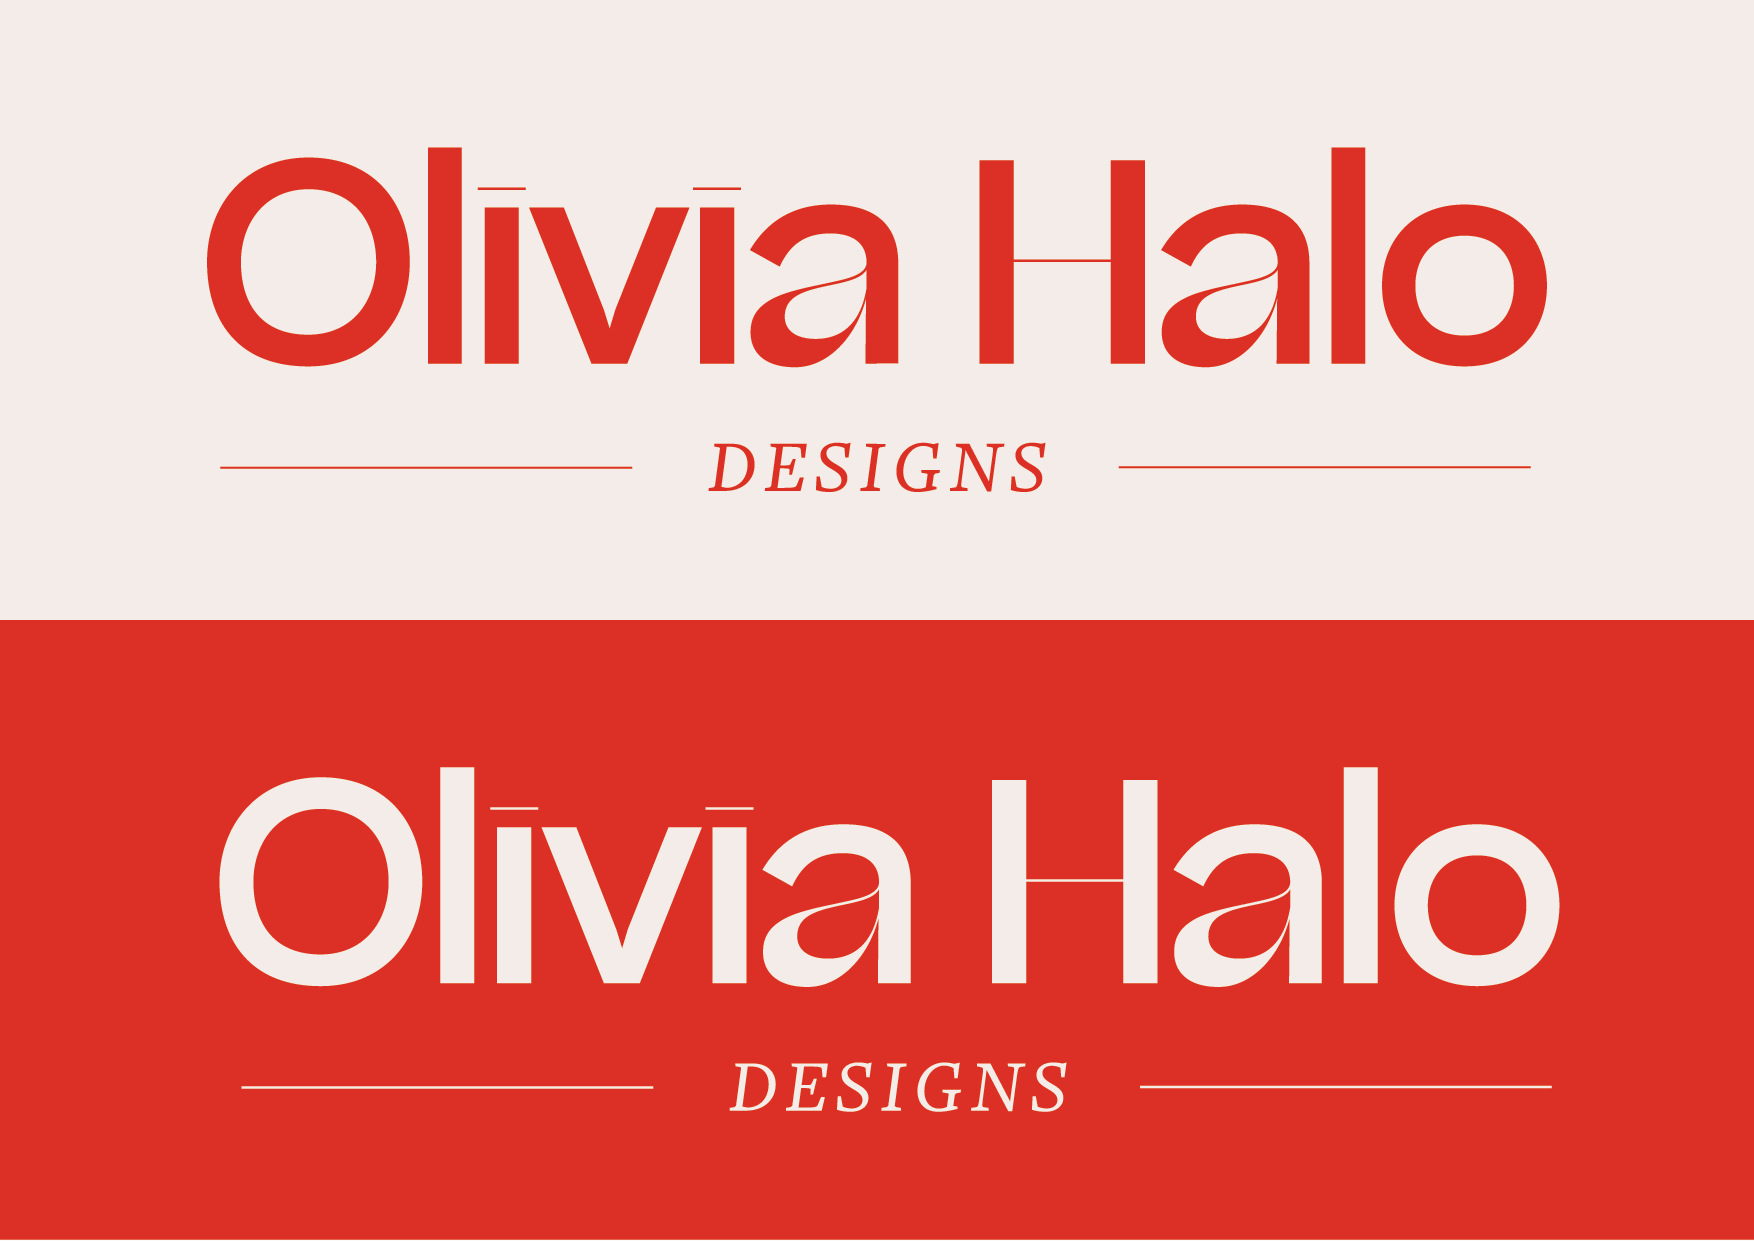 02_Olivia Halo_For Web-06.png